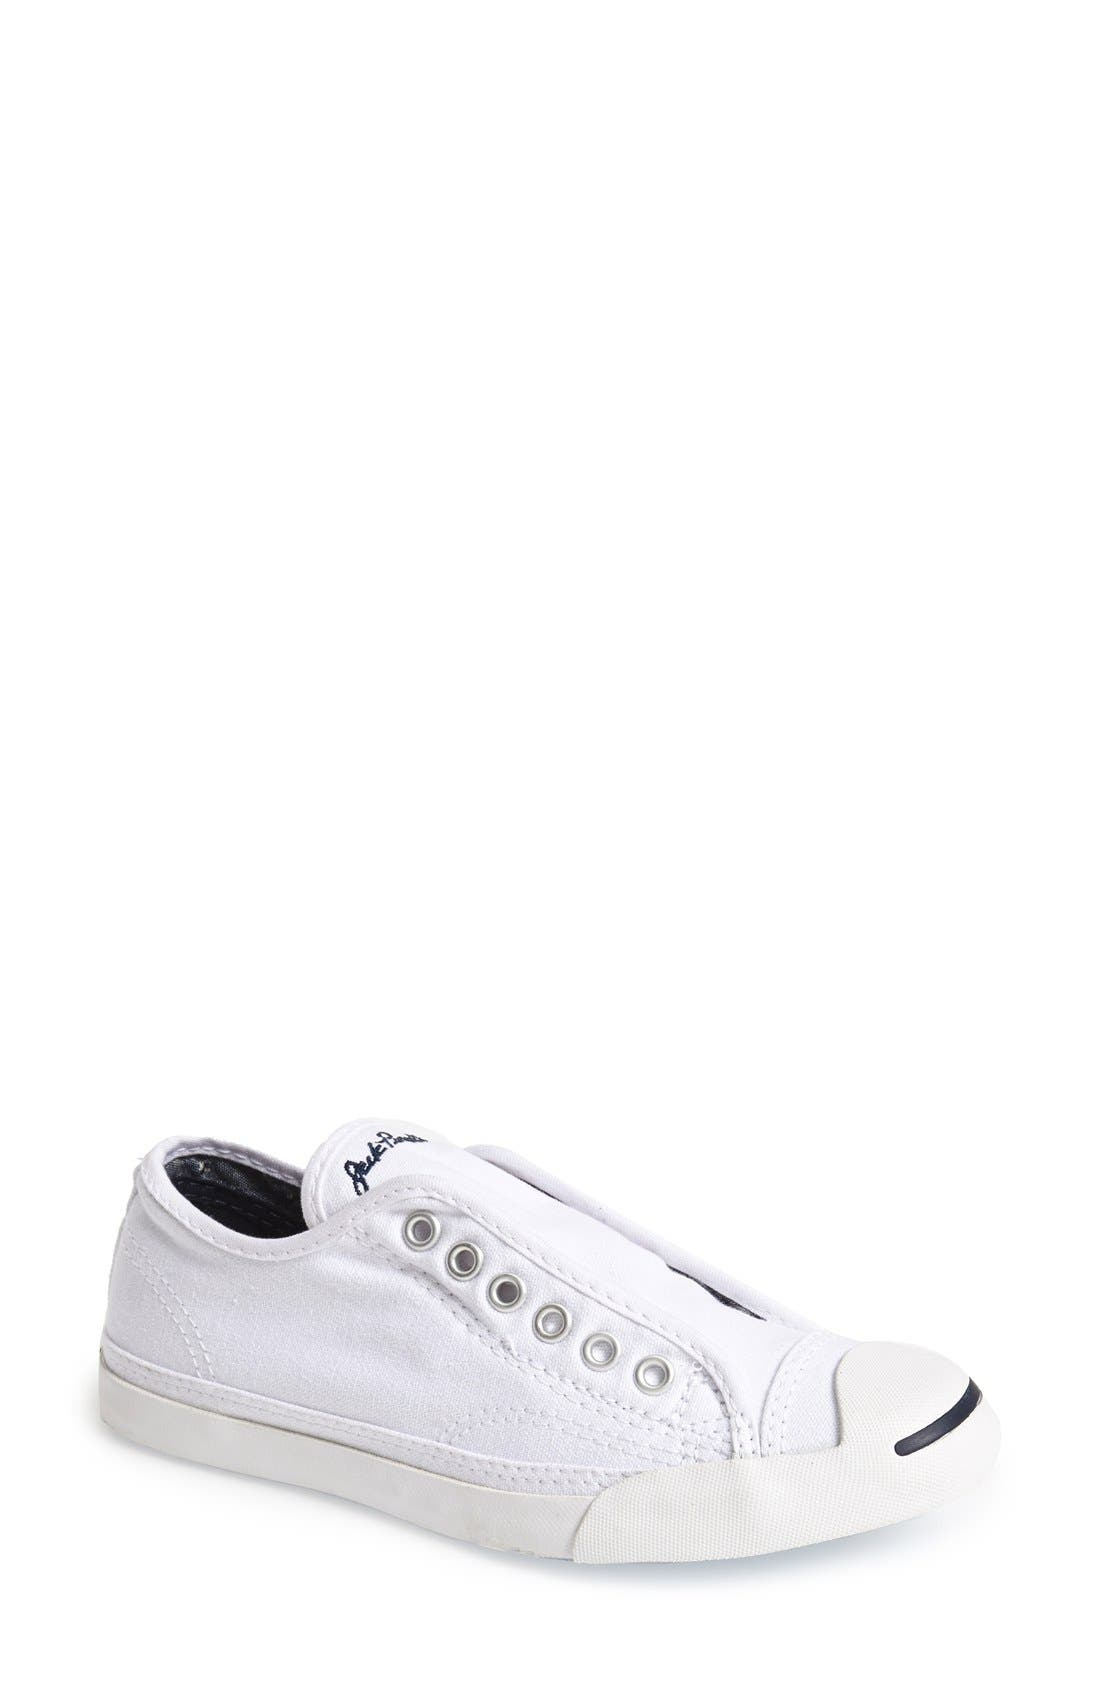 Main Image - Converse Jack Purcell Low Top Sneaker (Women)